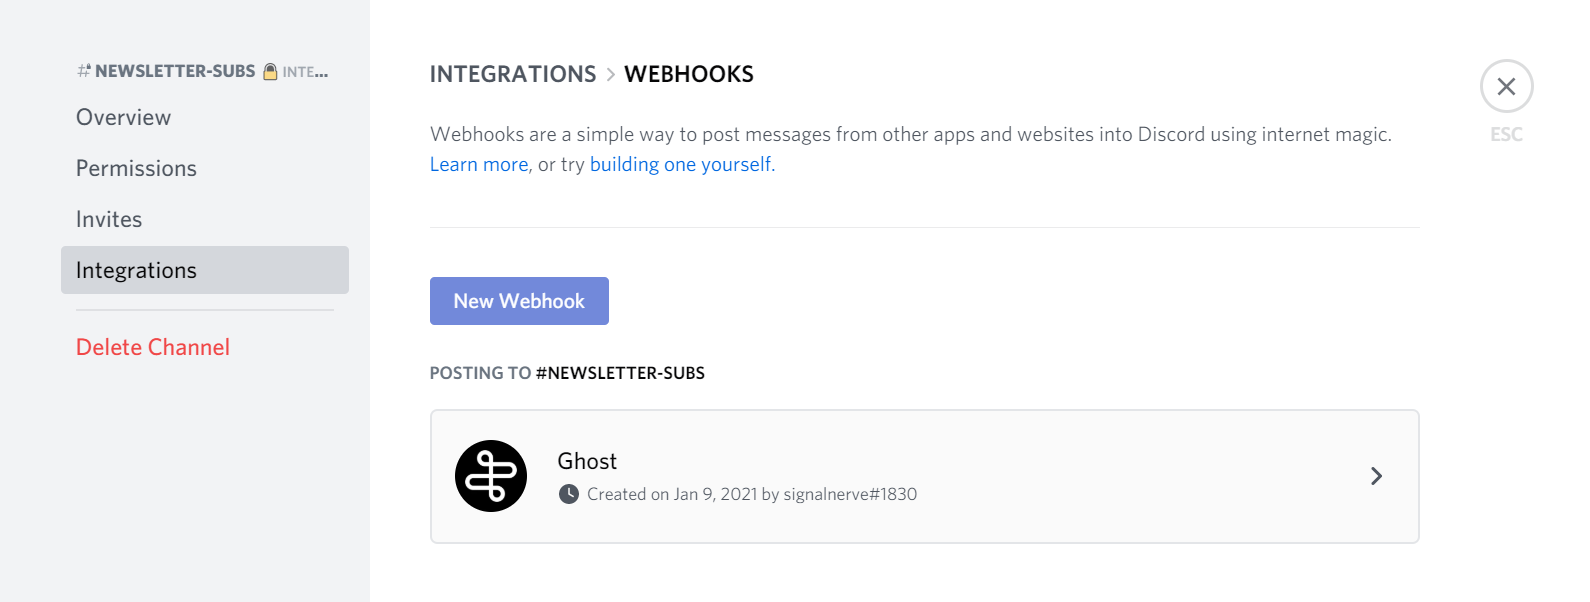 The integrations and webhooks UI in Discord's channel settings